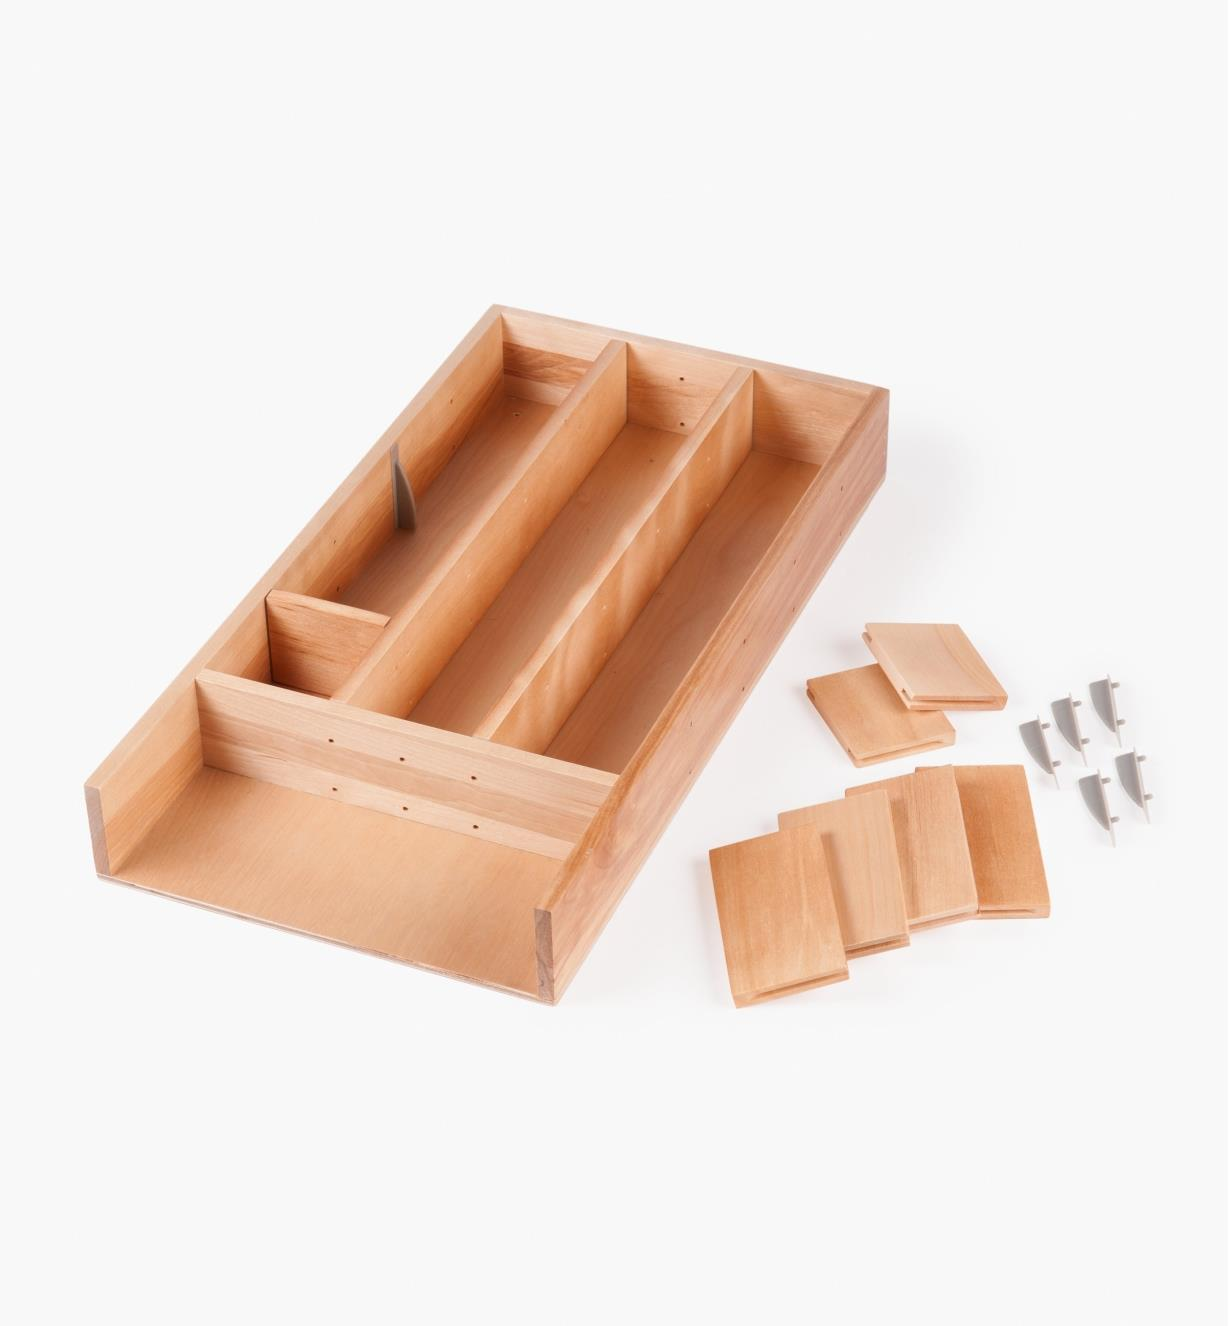 17K7550 - Small Adjustable Drawer Insert